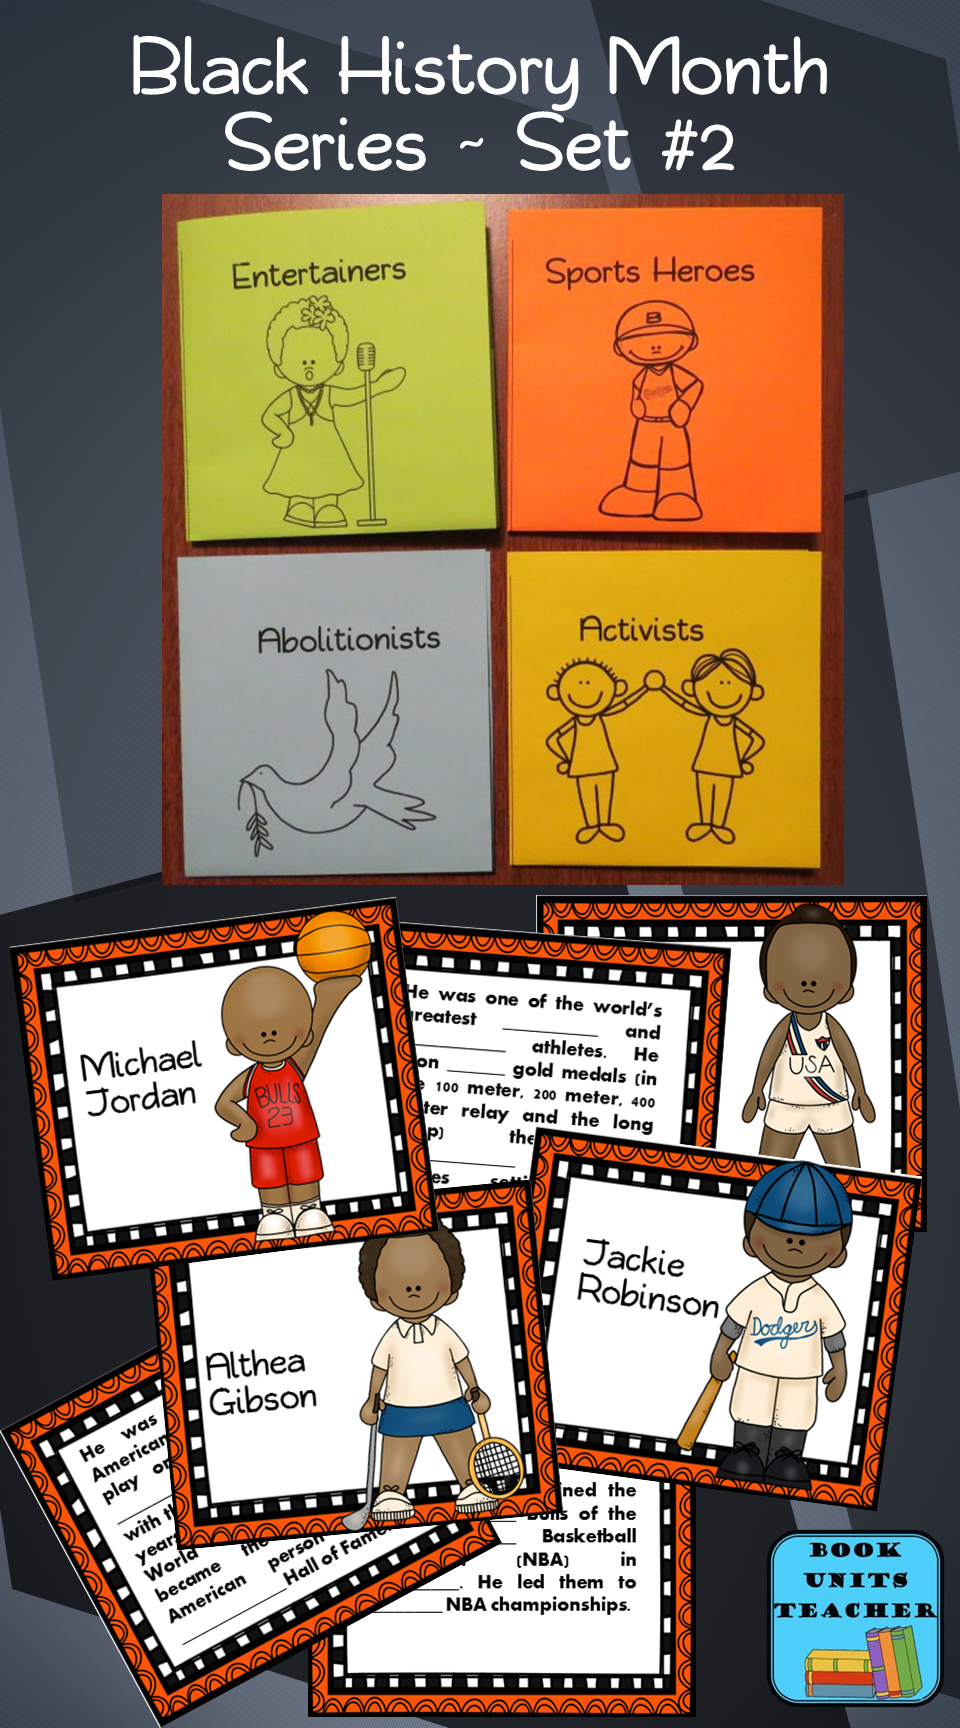 Black History Month for Kids Free Printable Black History Month Cards